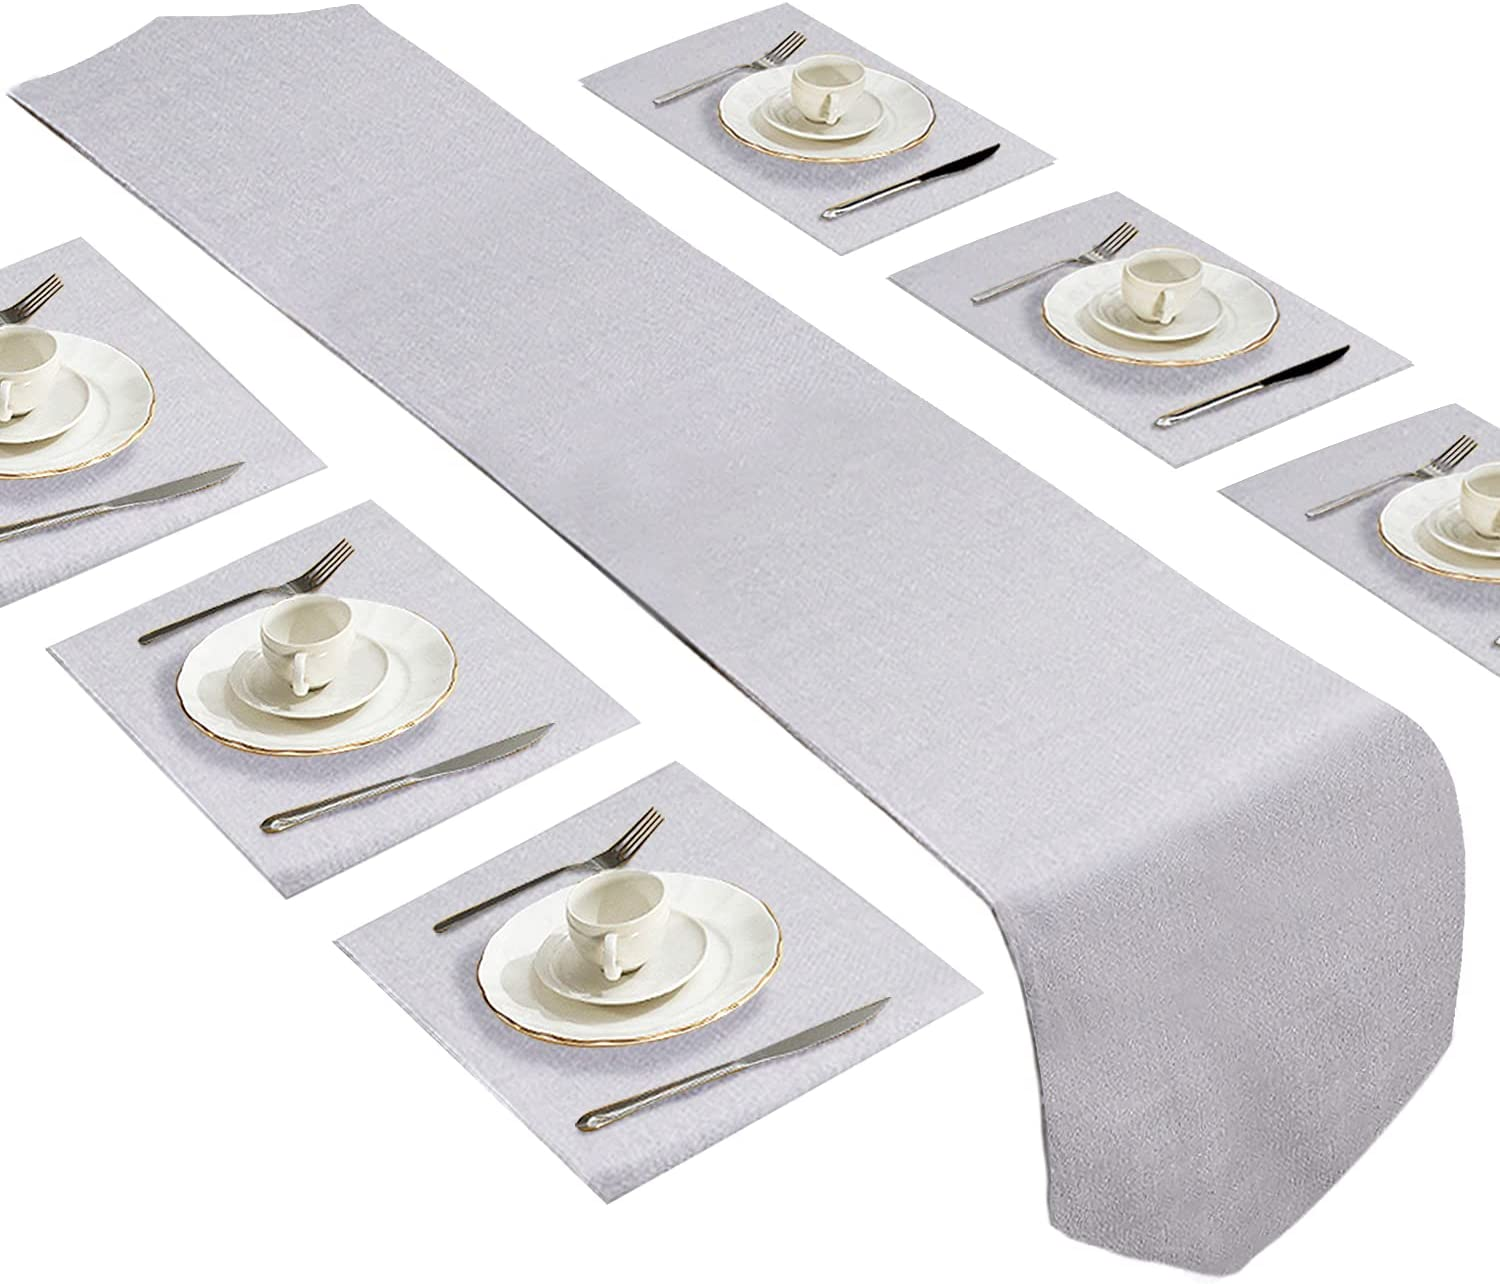 Dubulle Grey Finally popular brand Table Runner and Placemats for Time sale 6 Kitchen Din Set of